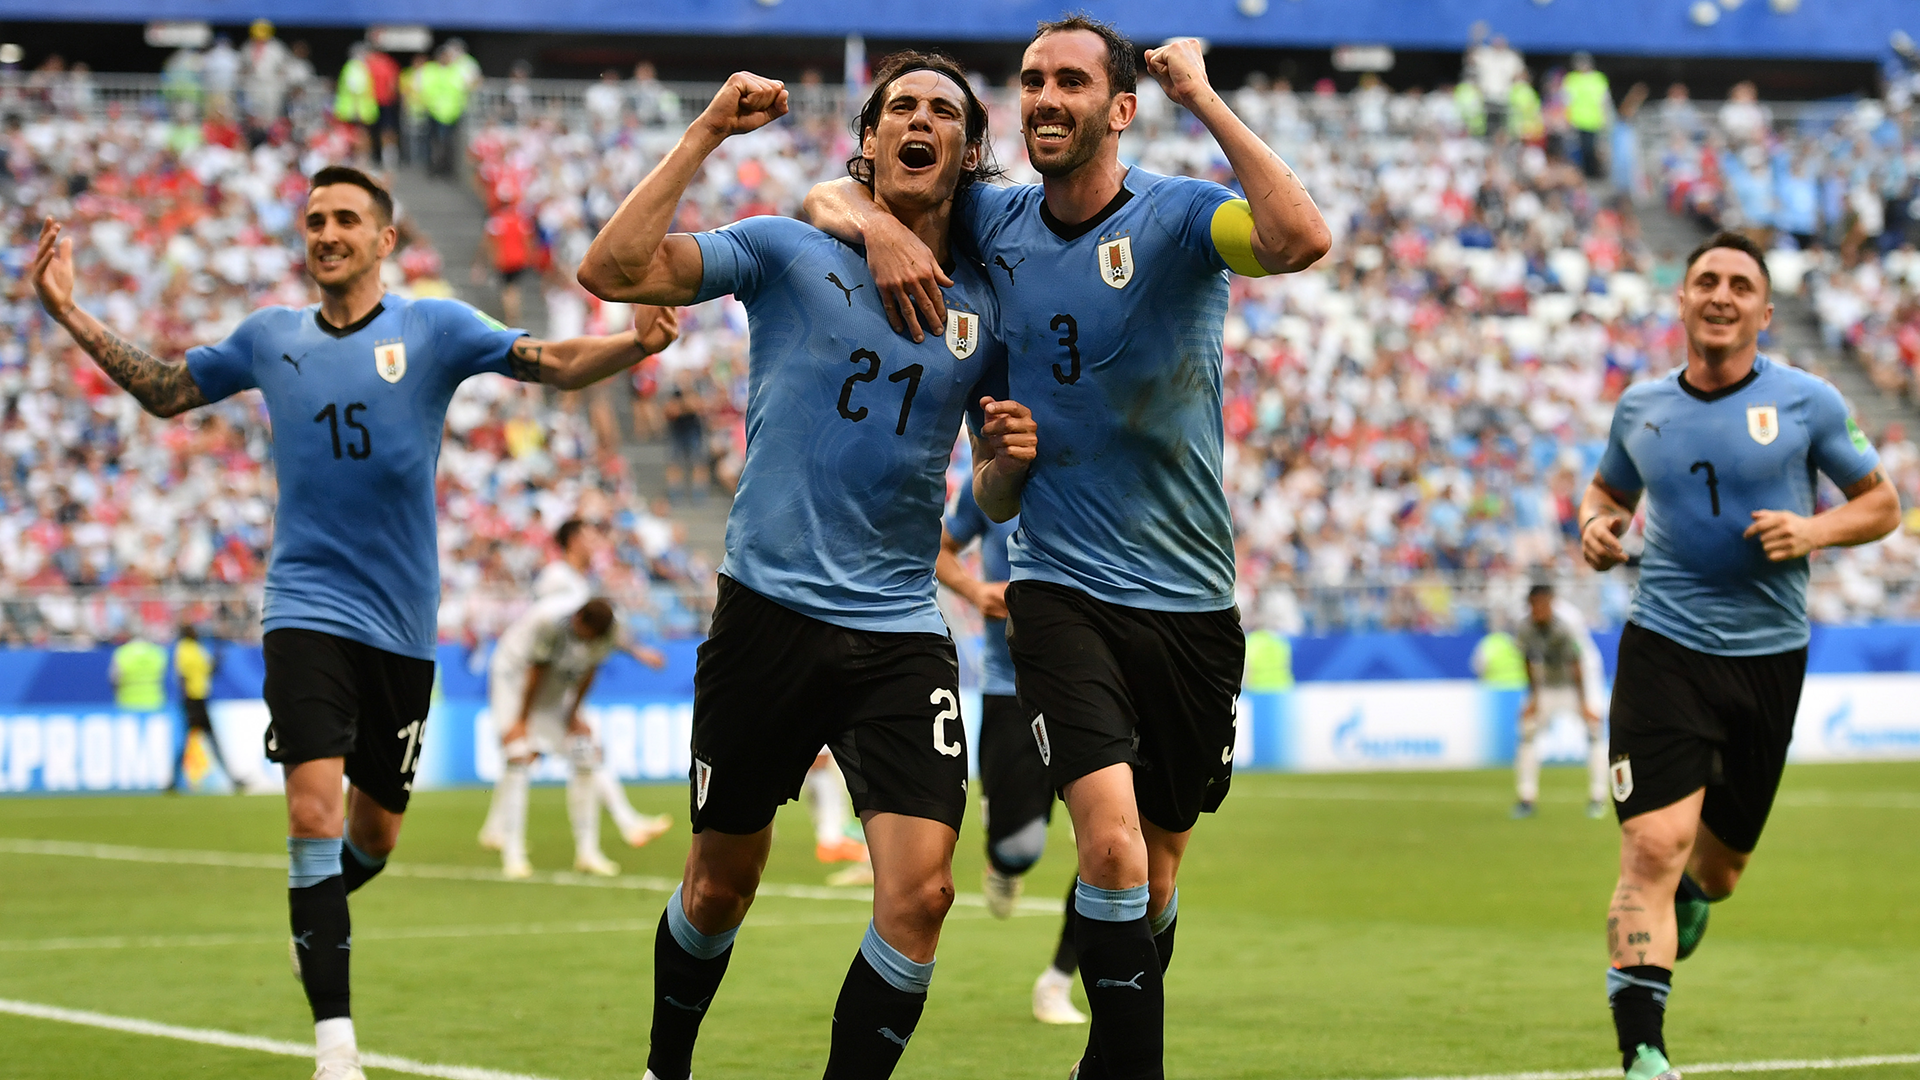 Brilliant Edinson Cavani brace gives Uruguay 2-1 win over Portugal